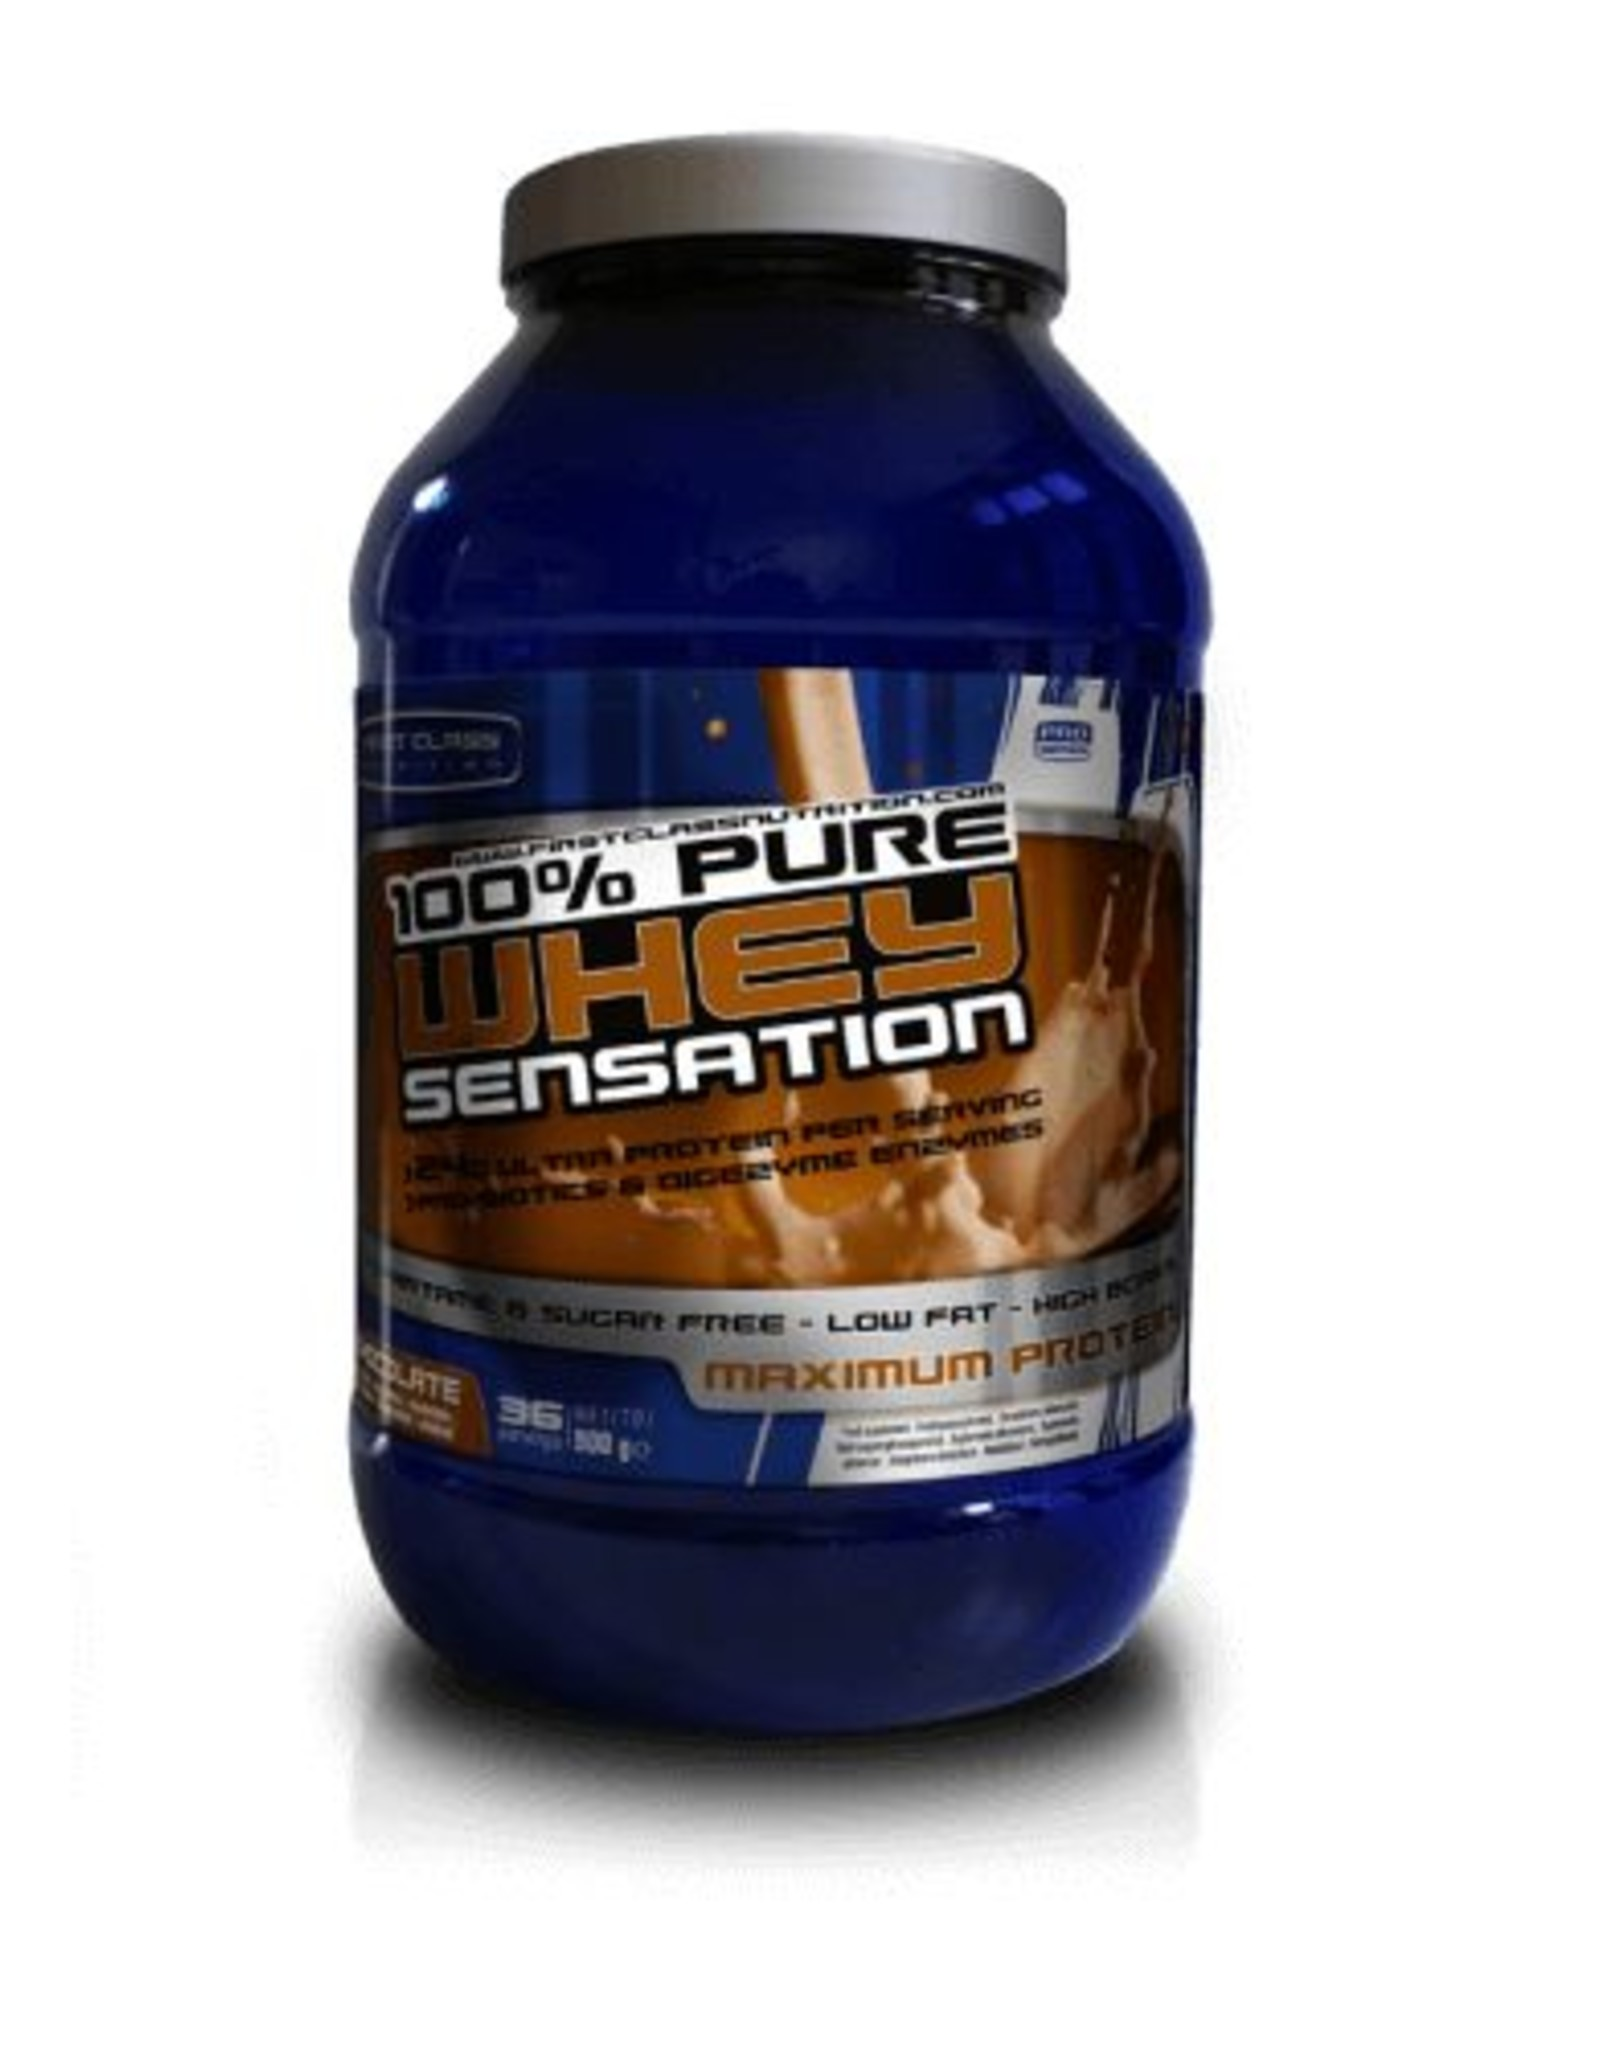 First class nutrition Whey sensation chocolade